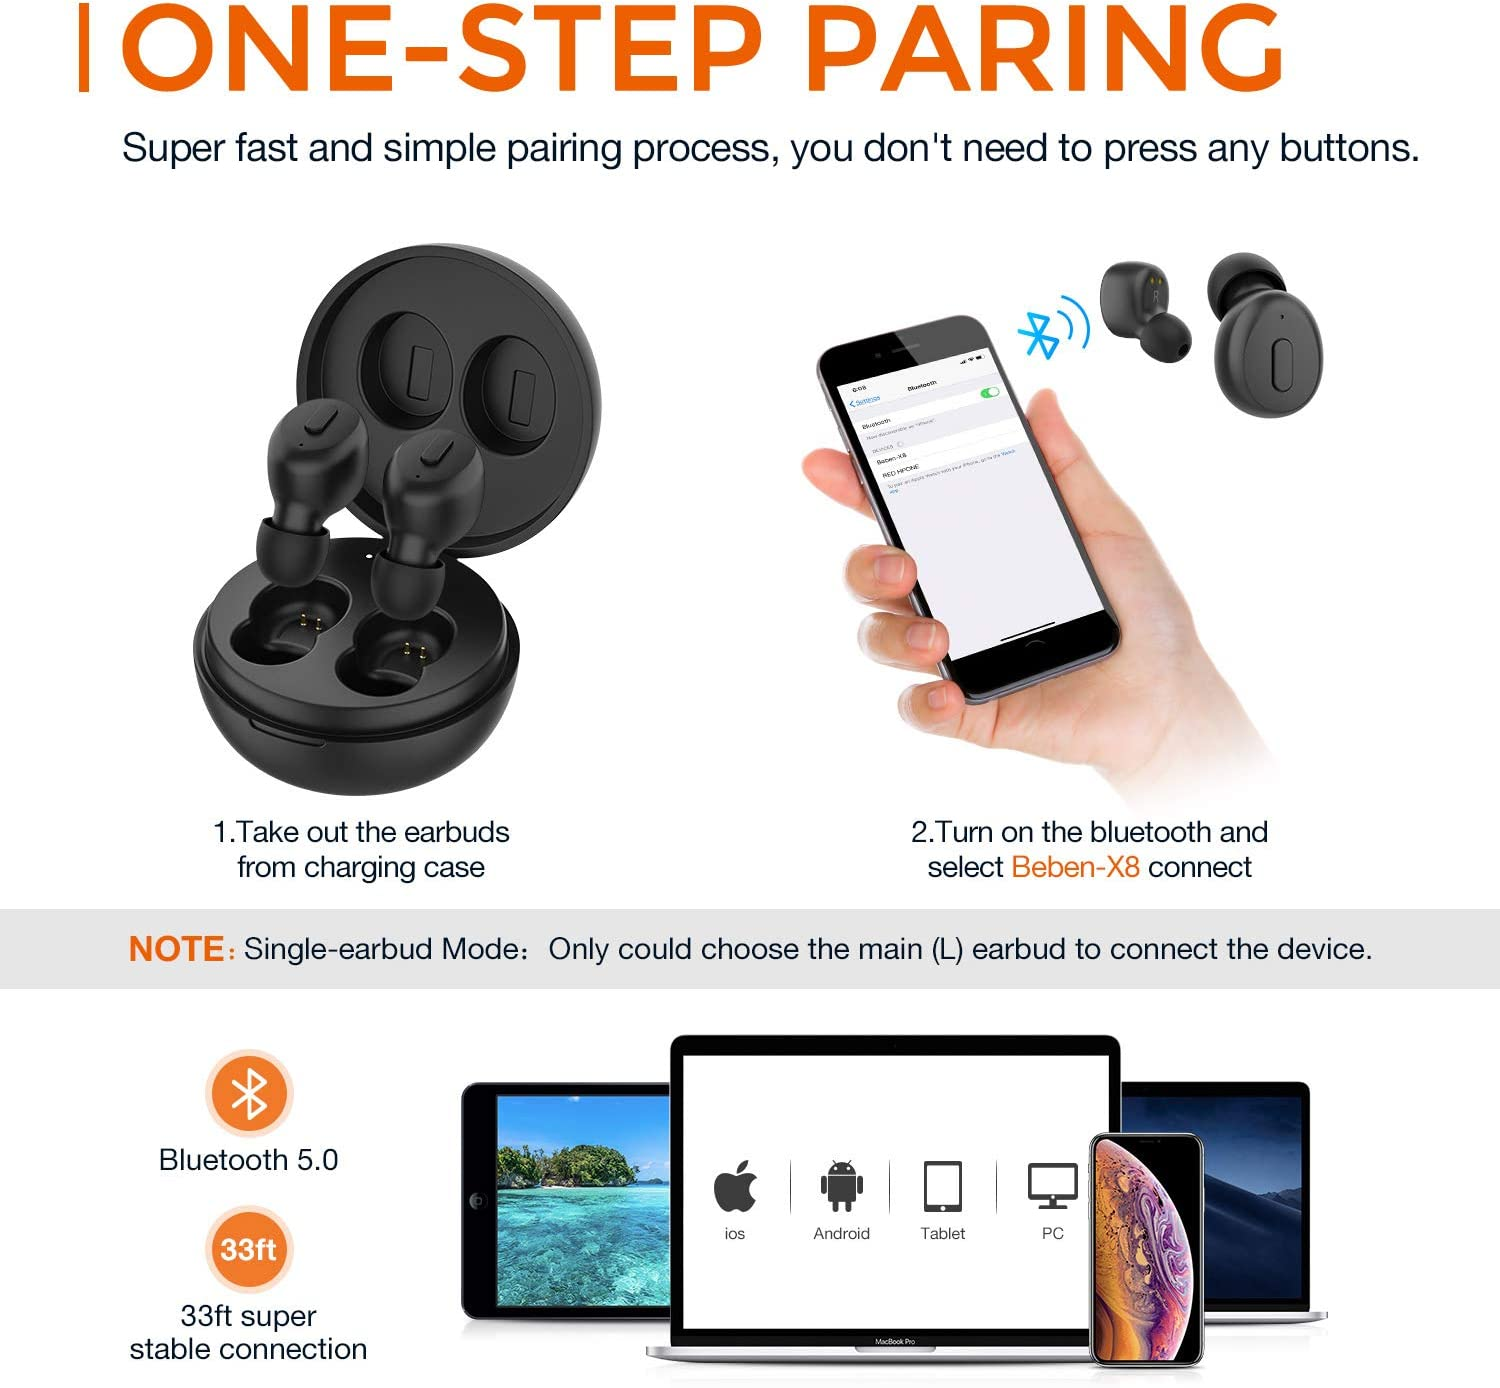 True Wireless Earbuds, BEBEN 5H Continuous 25H Cyclic Playtime IP68 Waterproof 5.0 Wireless Bluetooth Earbuds with Wireless Charging Case, Binaural Stereo Earbuds with Mic and Volume Control